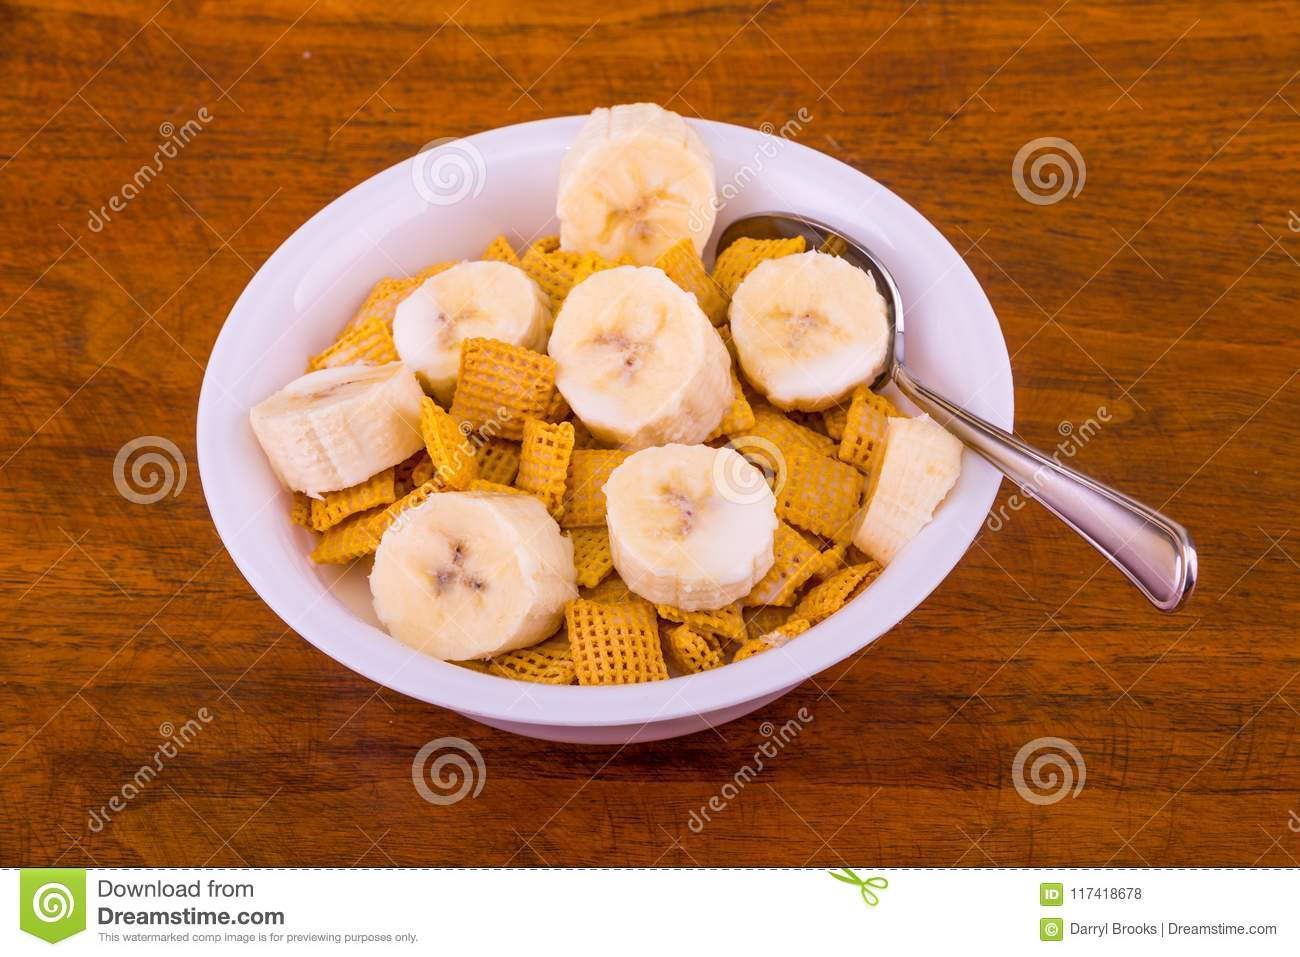 Crunchy Corn Cereal with Bananas and Milk